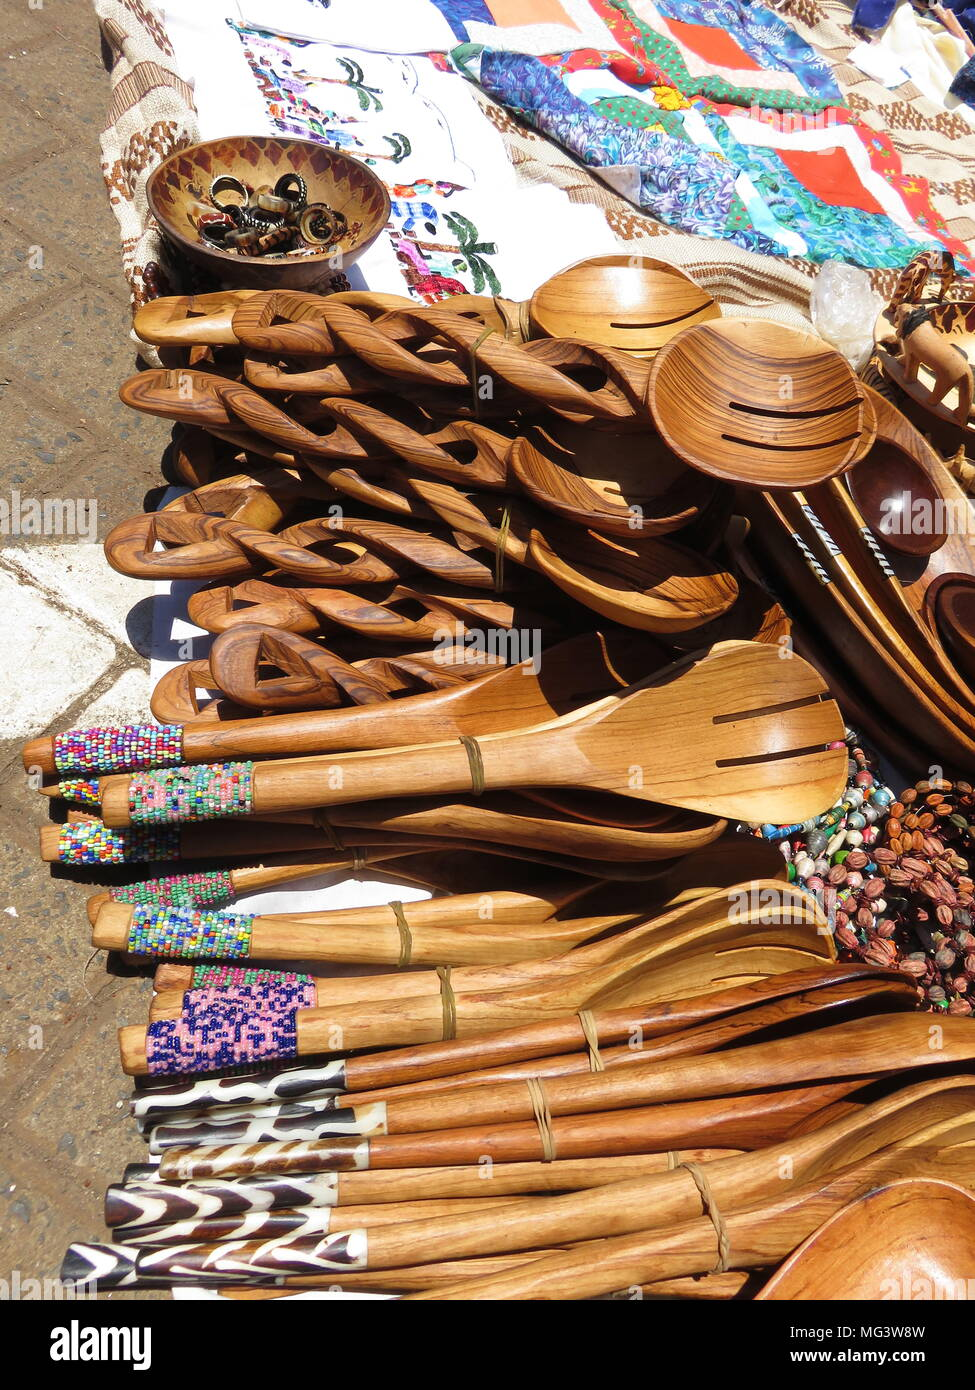 Wooden Salad Spoons in the Masaai Market Stock Photo